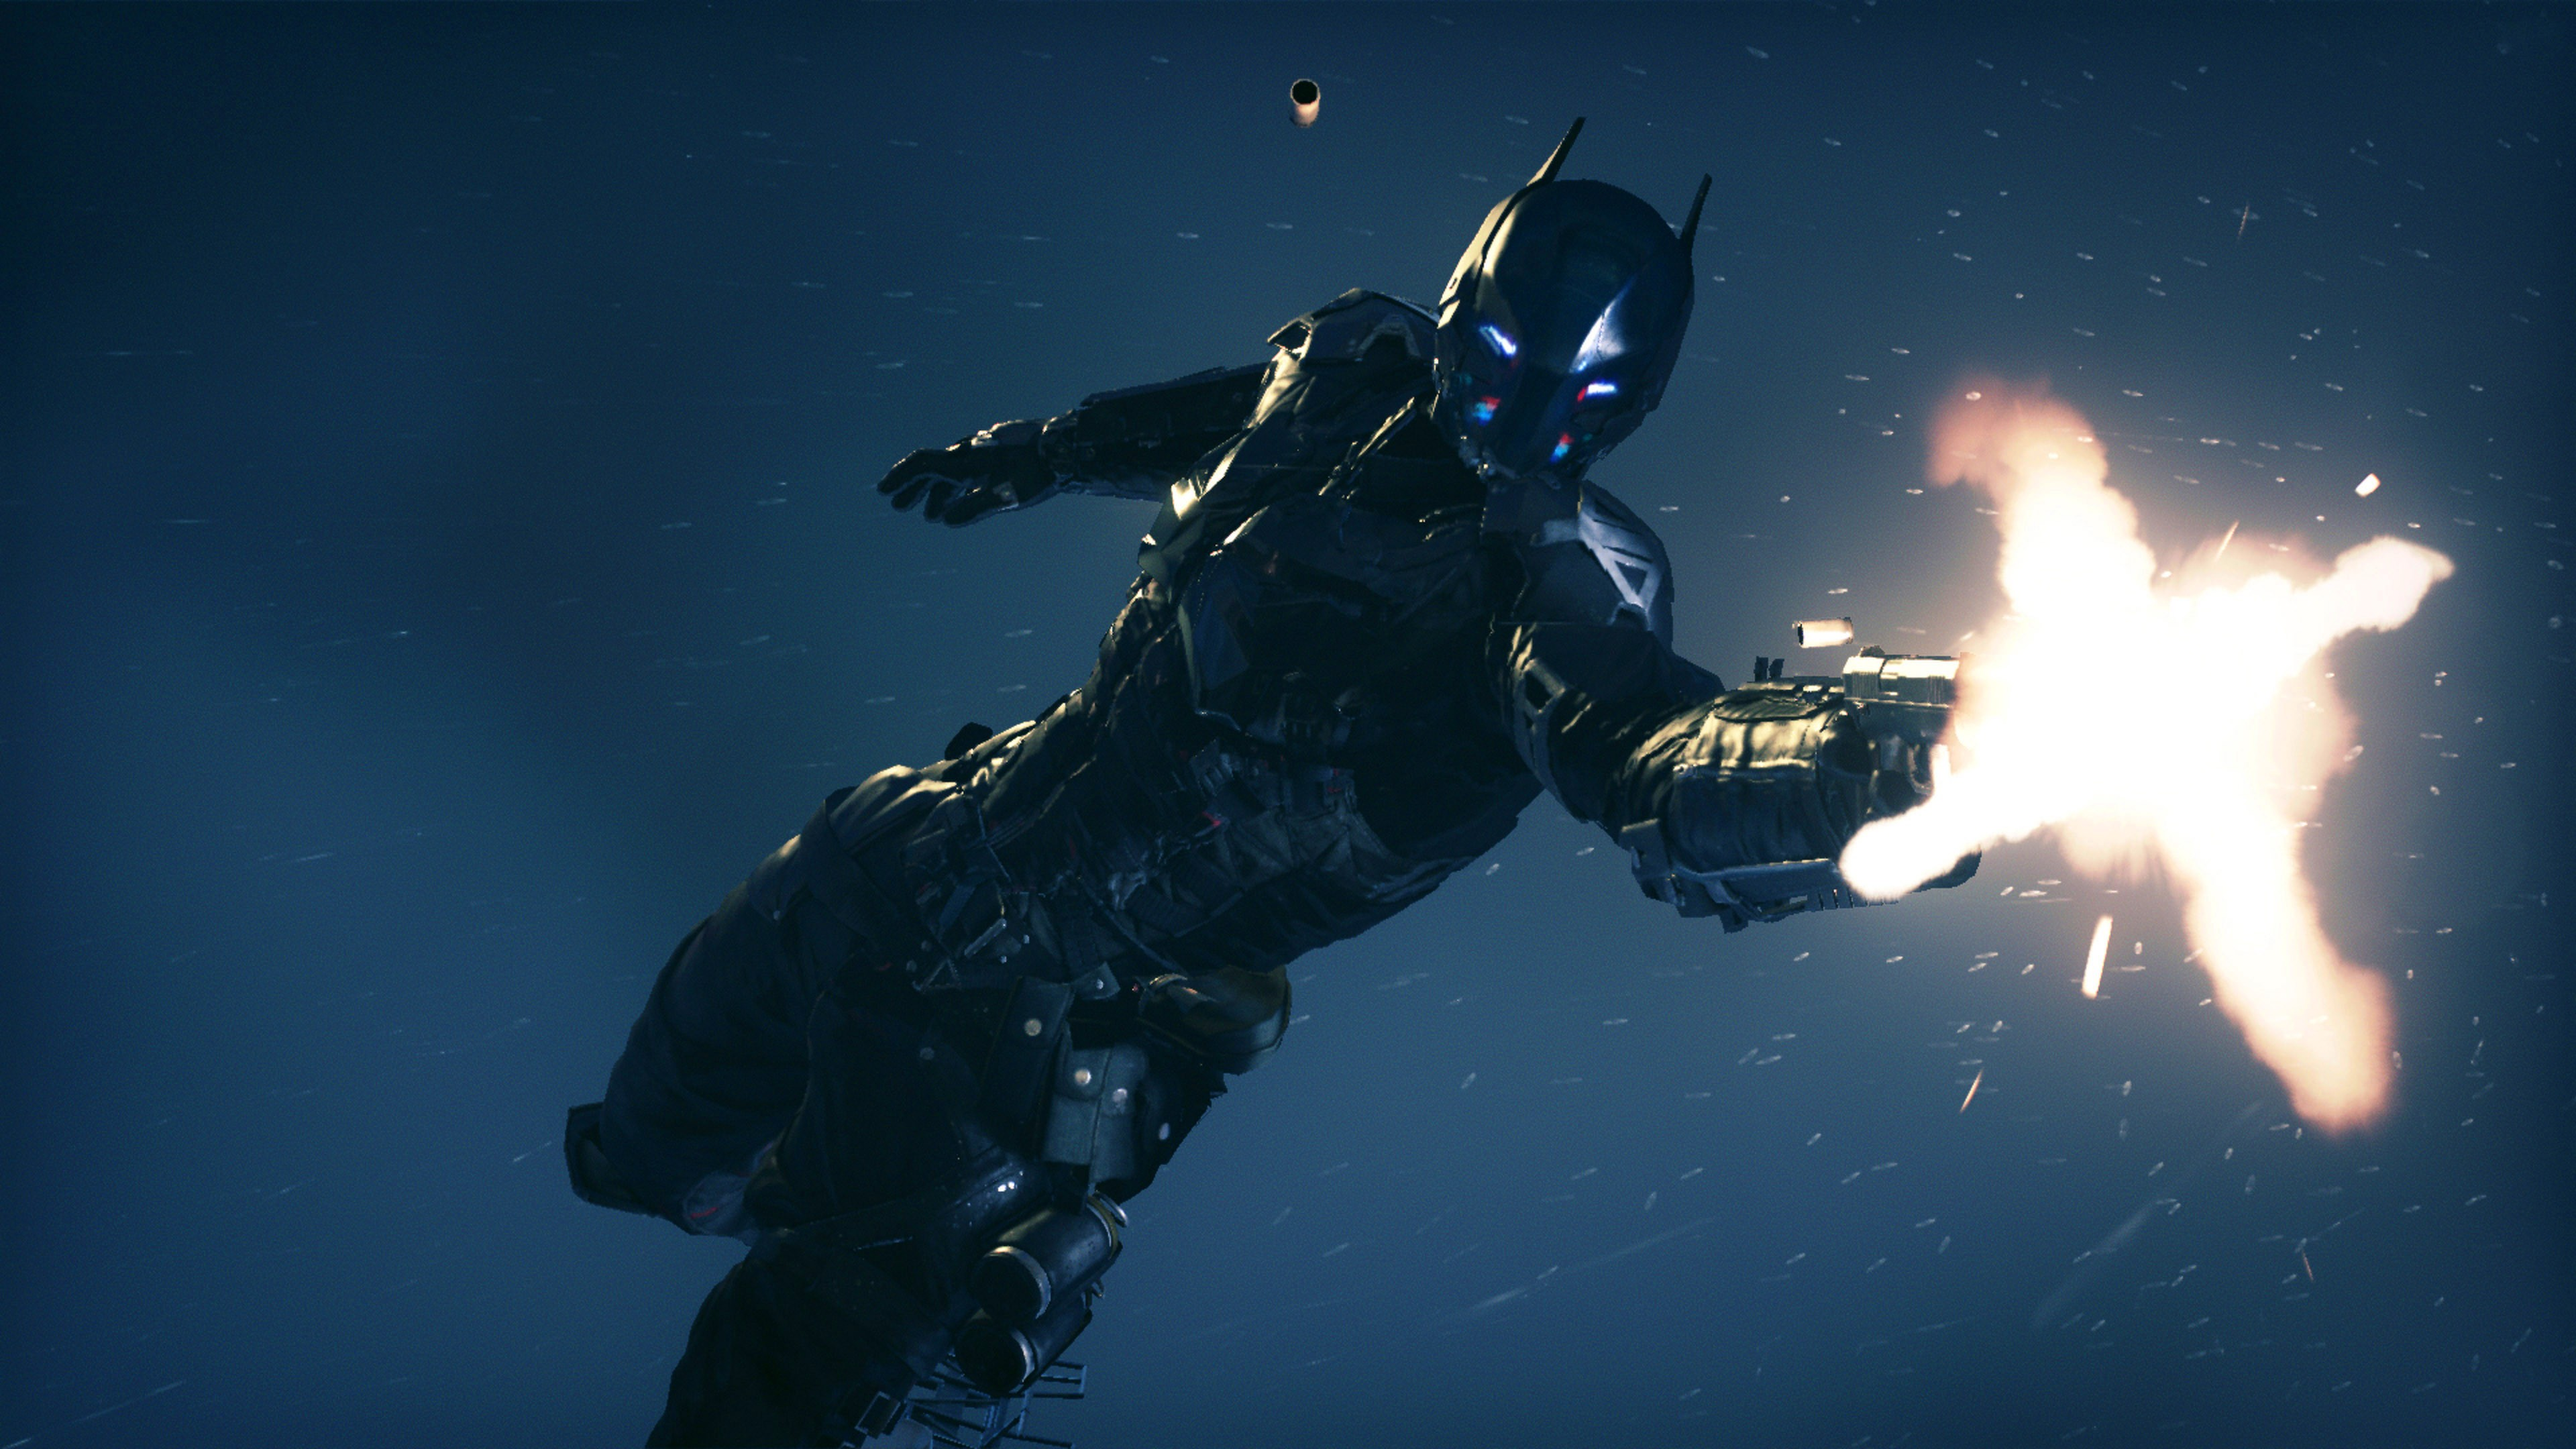 Wallpaper Batman Arkham Knight 5k 4k wallpaper game Best Games 3840x2160